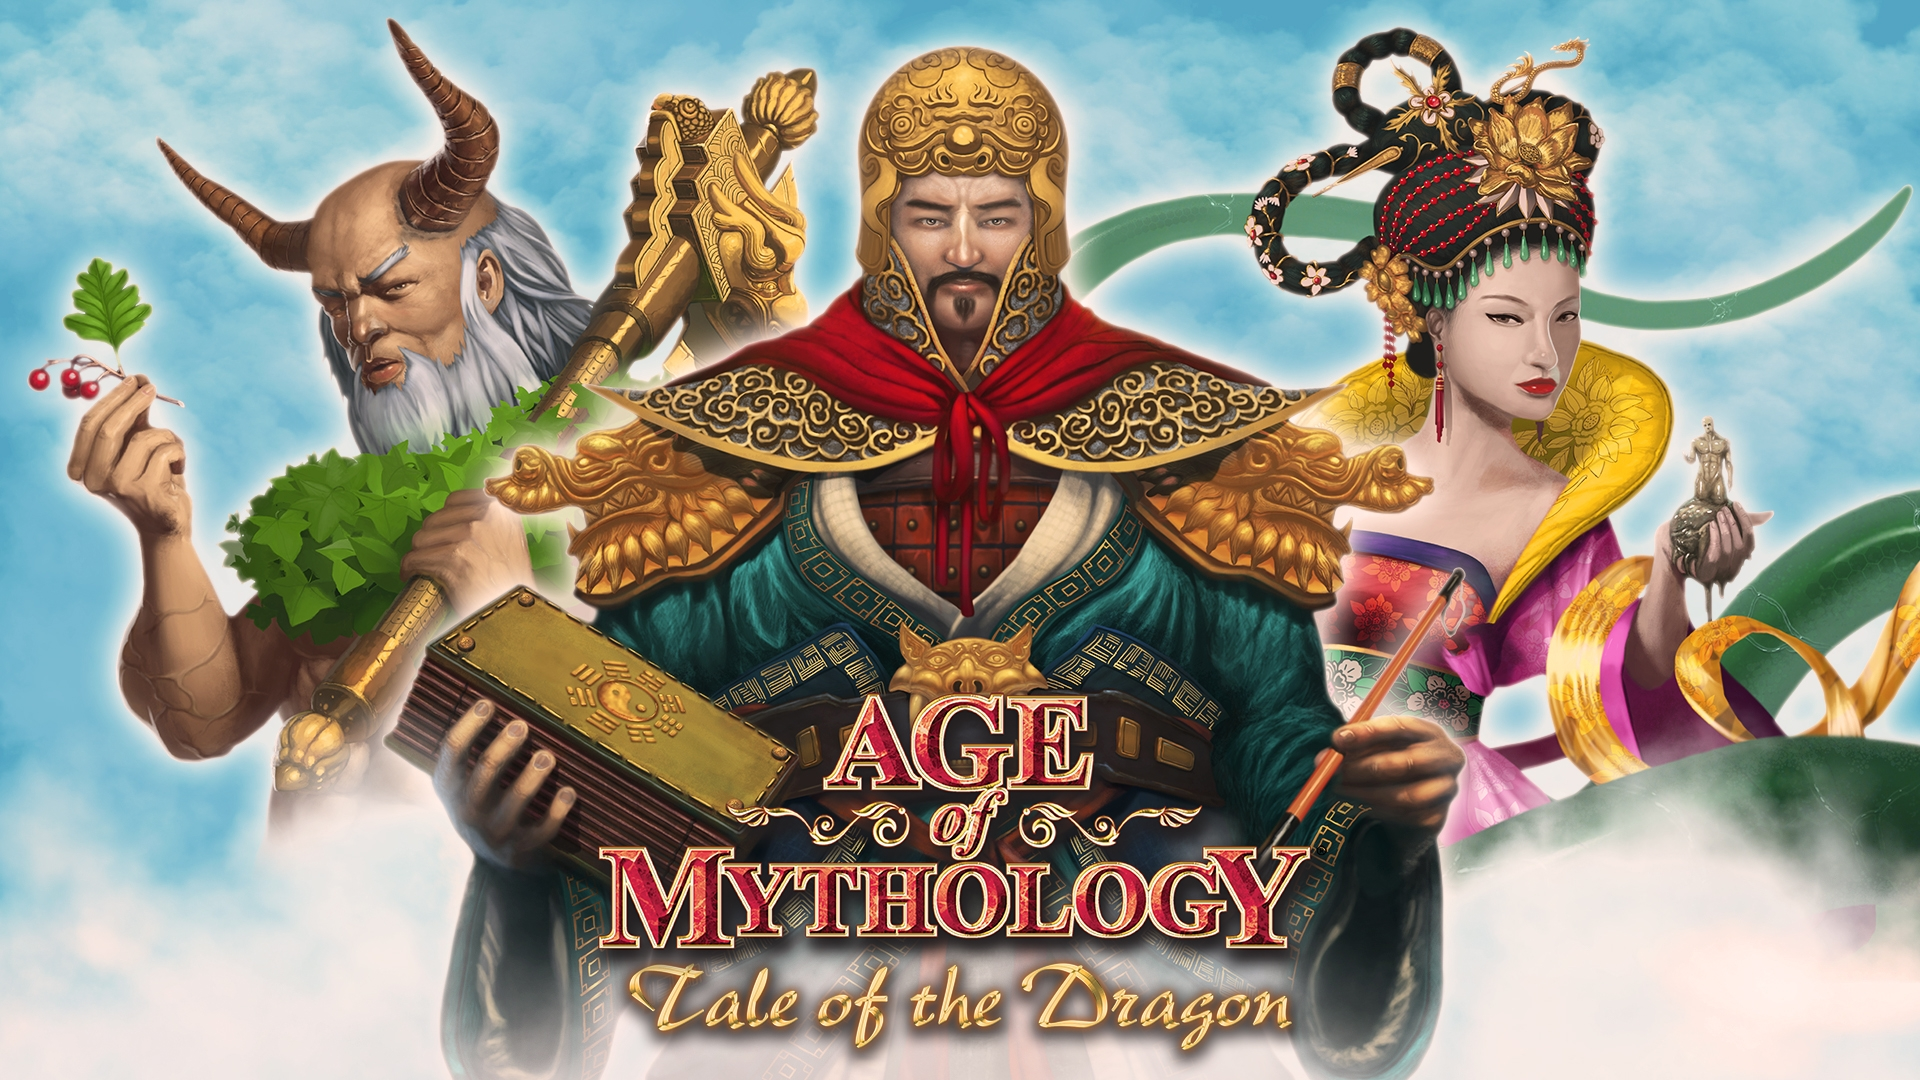 age of mythology tale of the dragon announcement forgotten empires